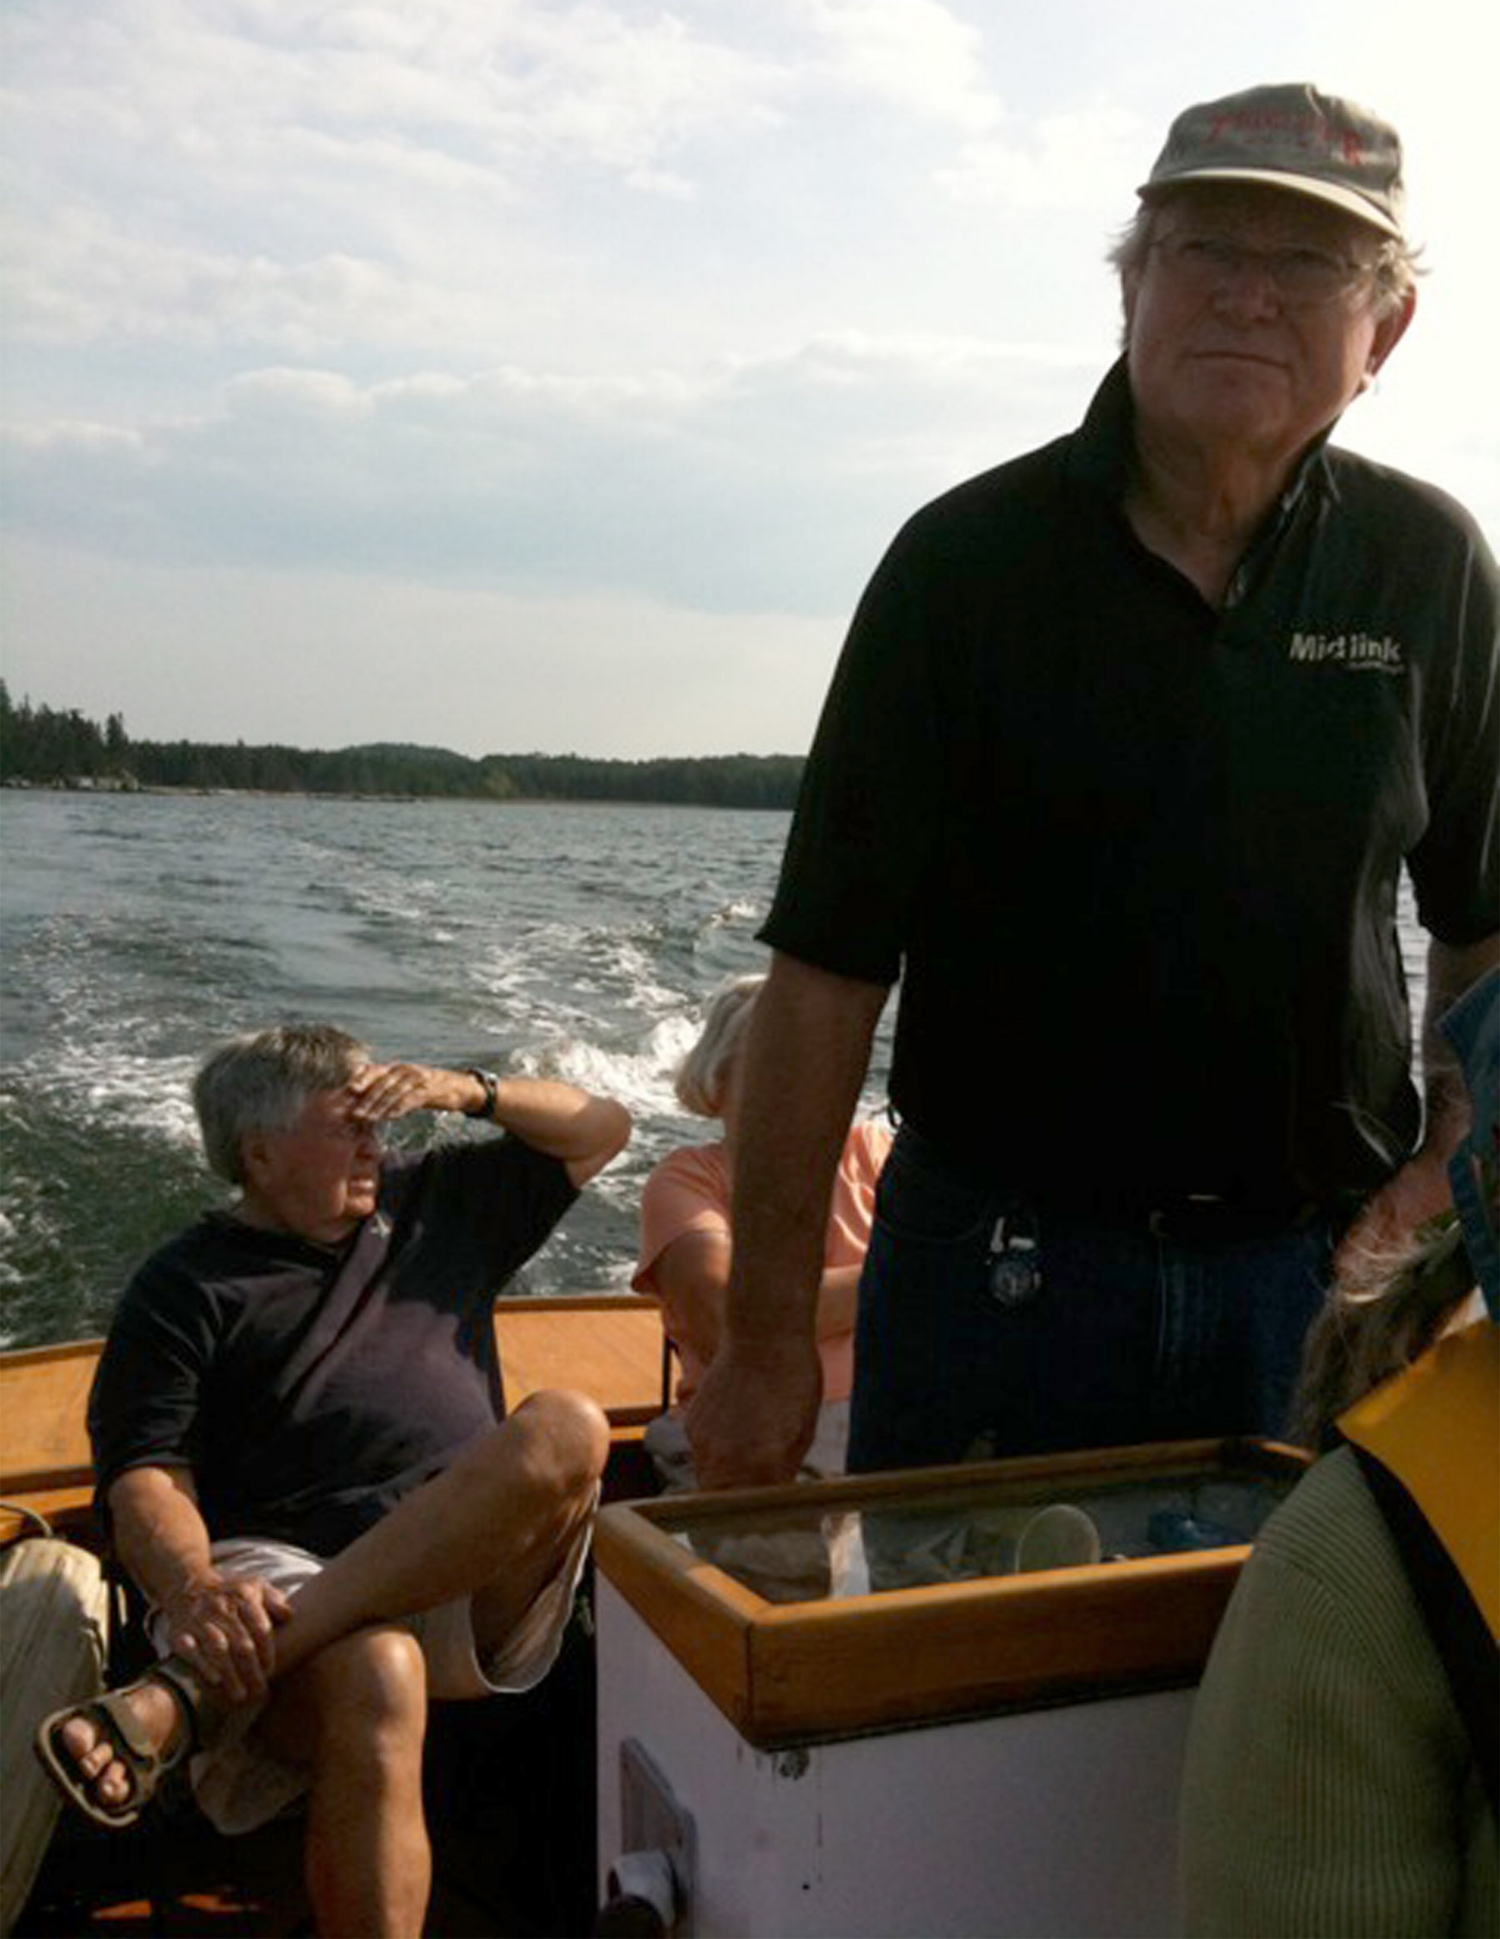 Dave Smith at the helm with Deane Richardson on the water in Castine, Maine